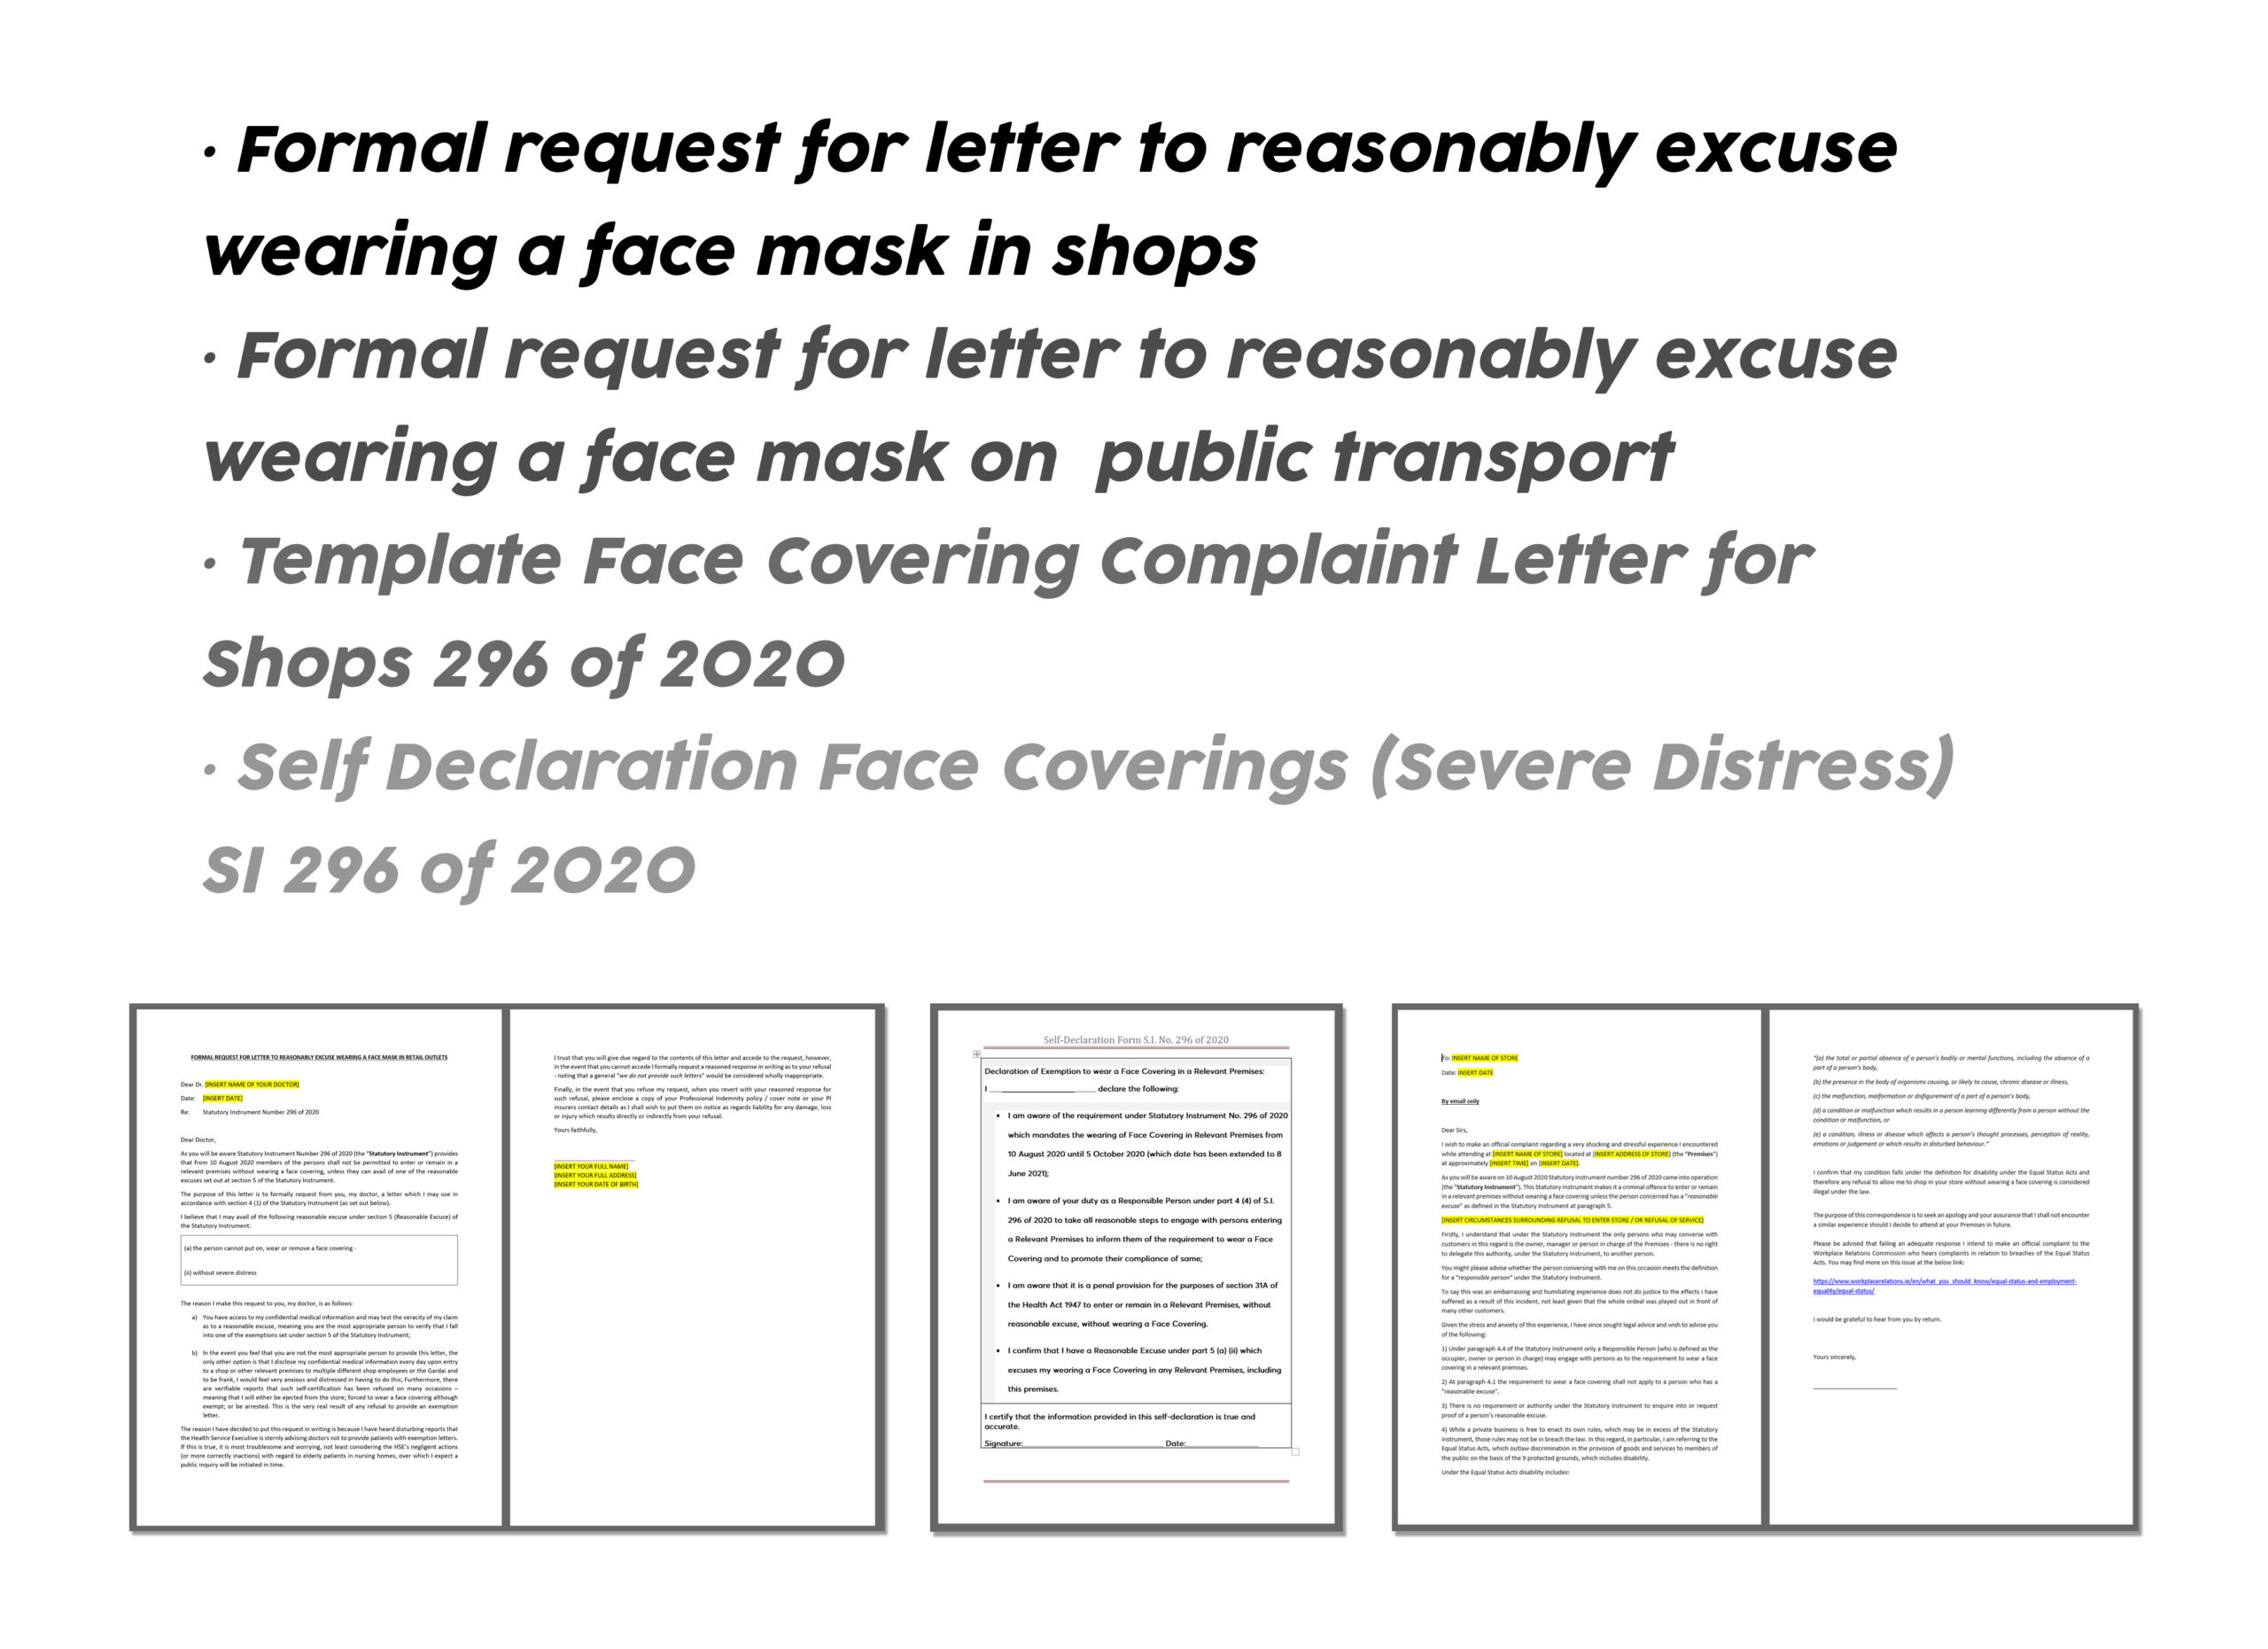 FACE COVERINGS EXEMPTION FORMS – IRELAND